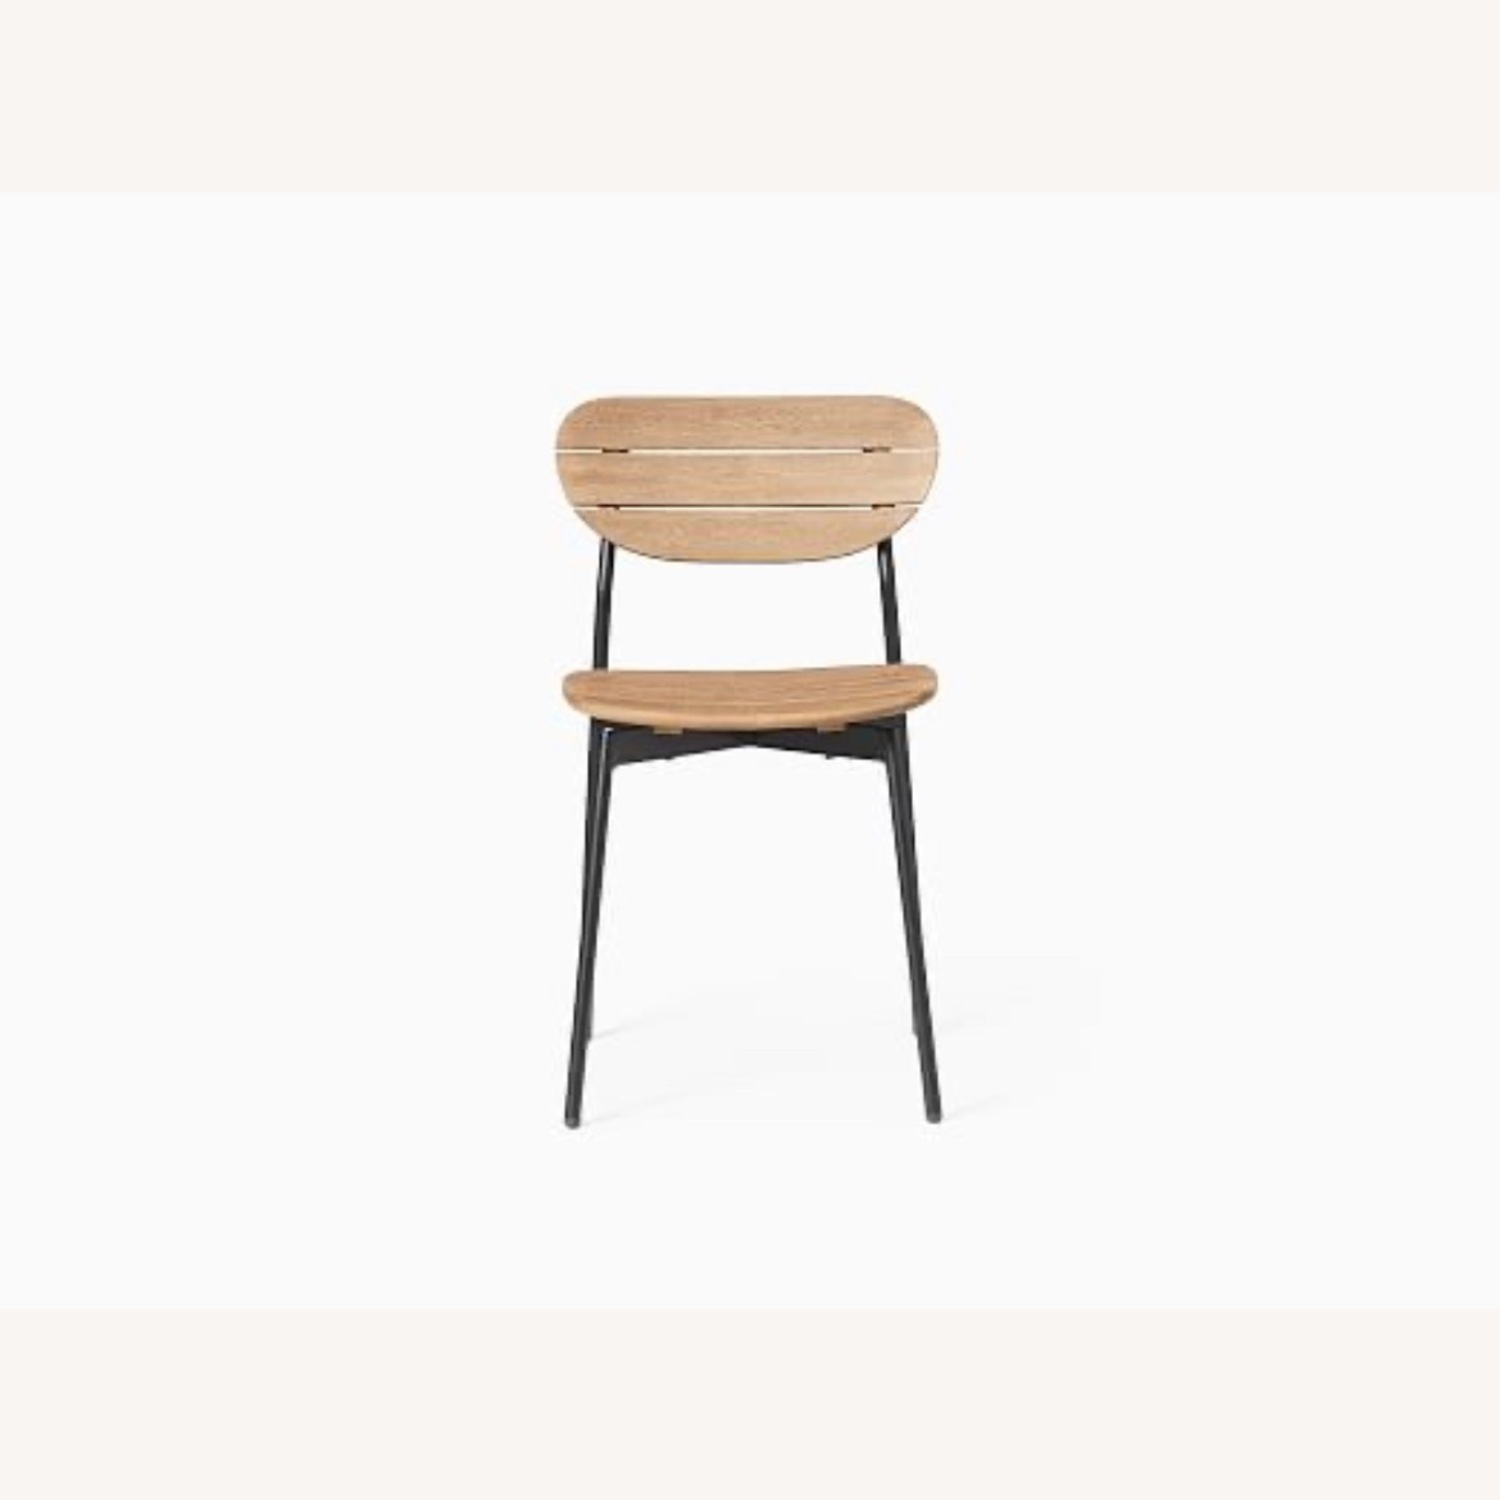 West Elm Frame Outdoor Set of 2 Dining Chairs - image-4